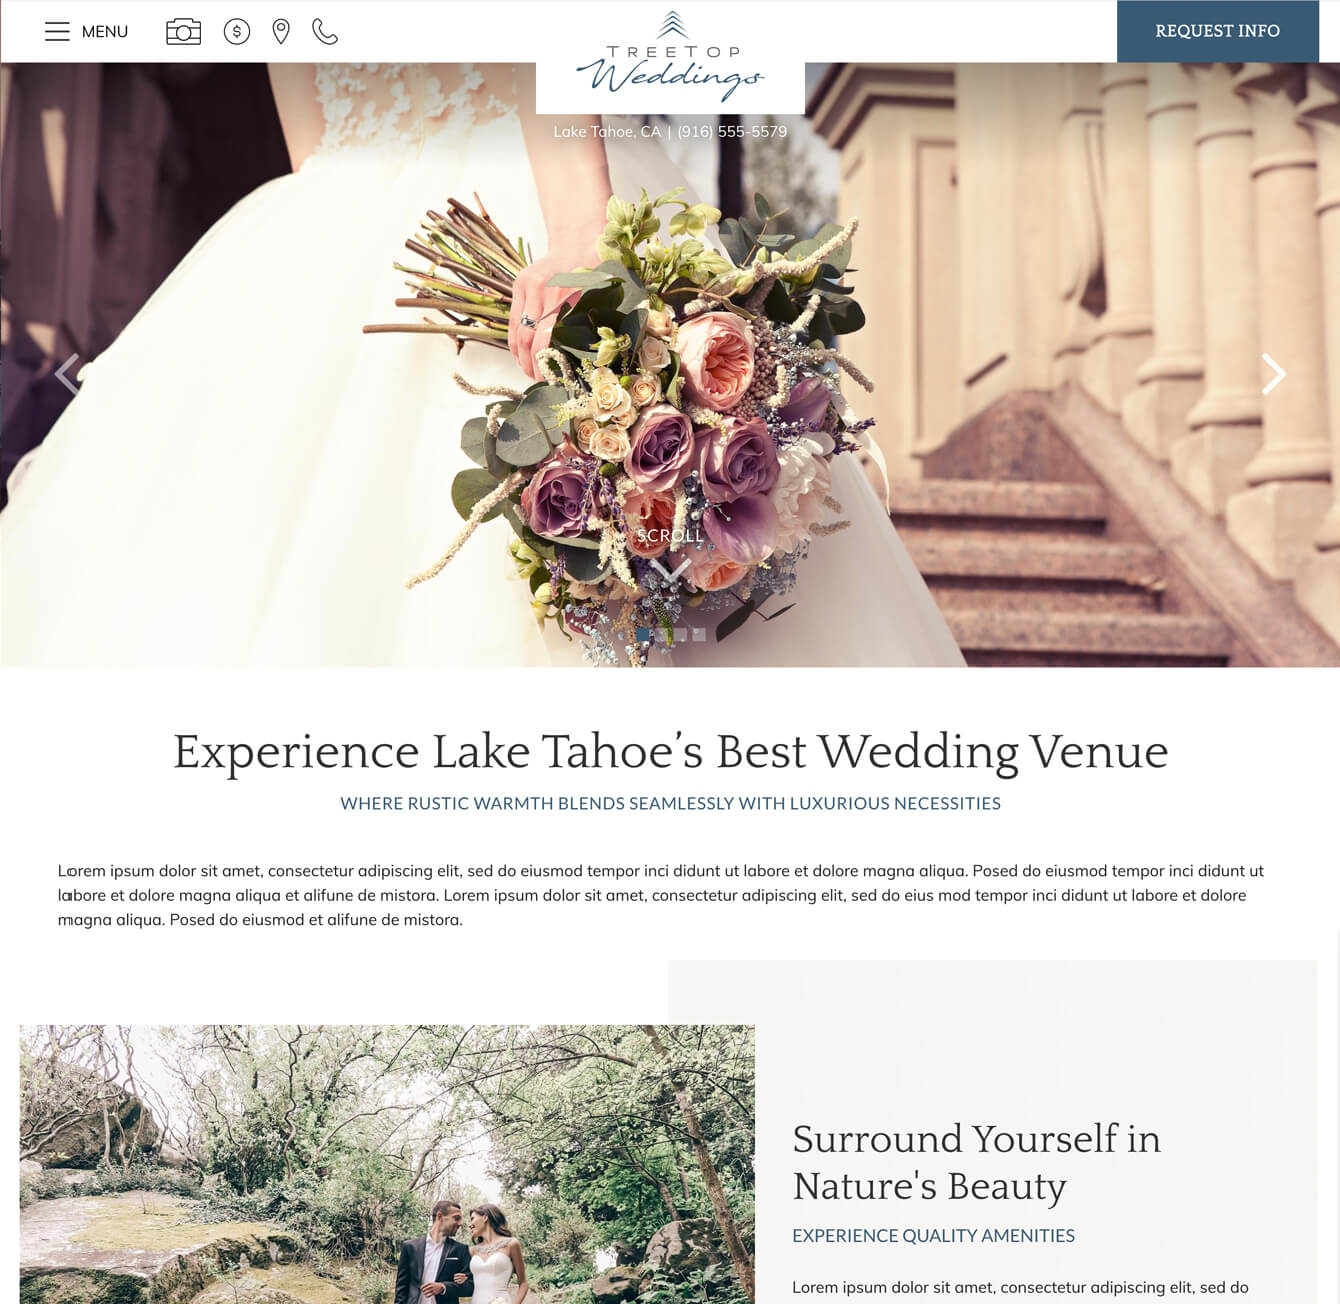 Web design sample for White Stone Signature Wedding design